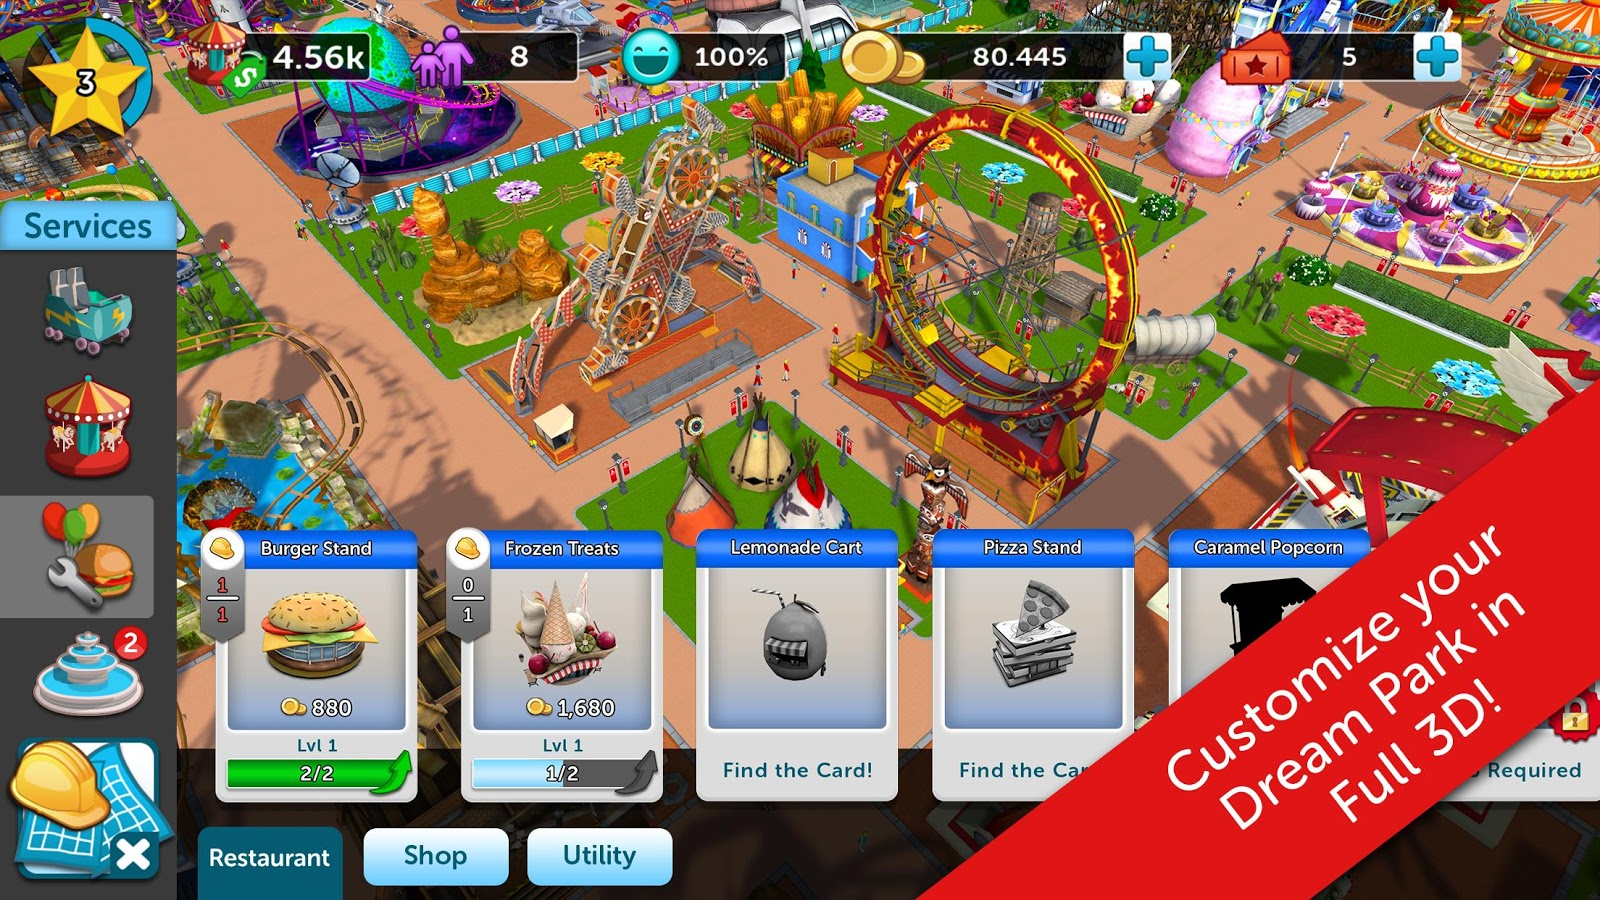 RollerCoaster Tycoon Touch v 1 2 21 Mod Apk with unlimited coins and